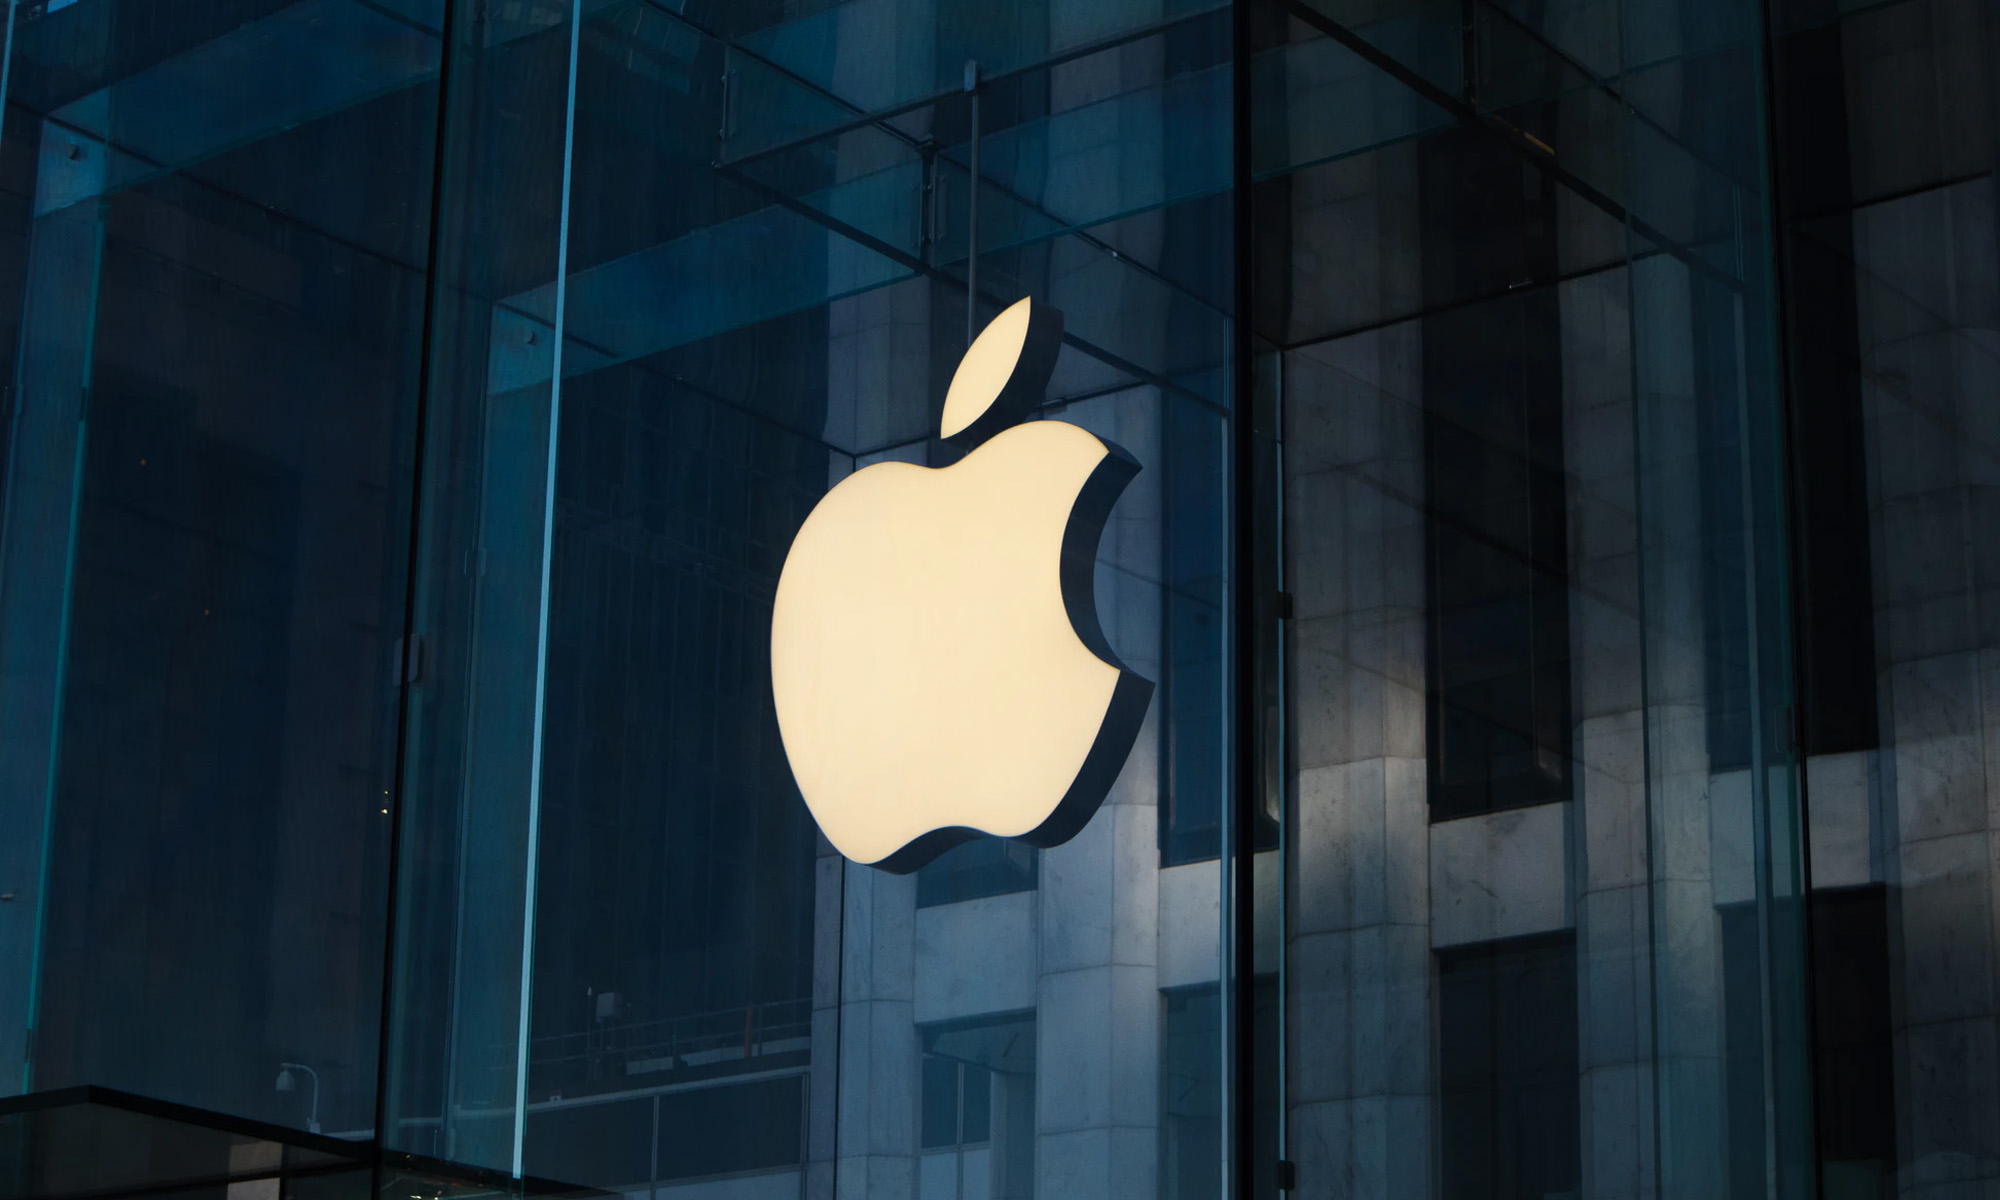 apple likely to release 8k vr headset in 2022